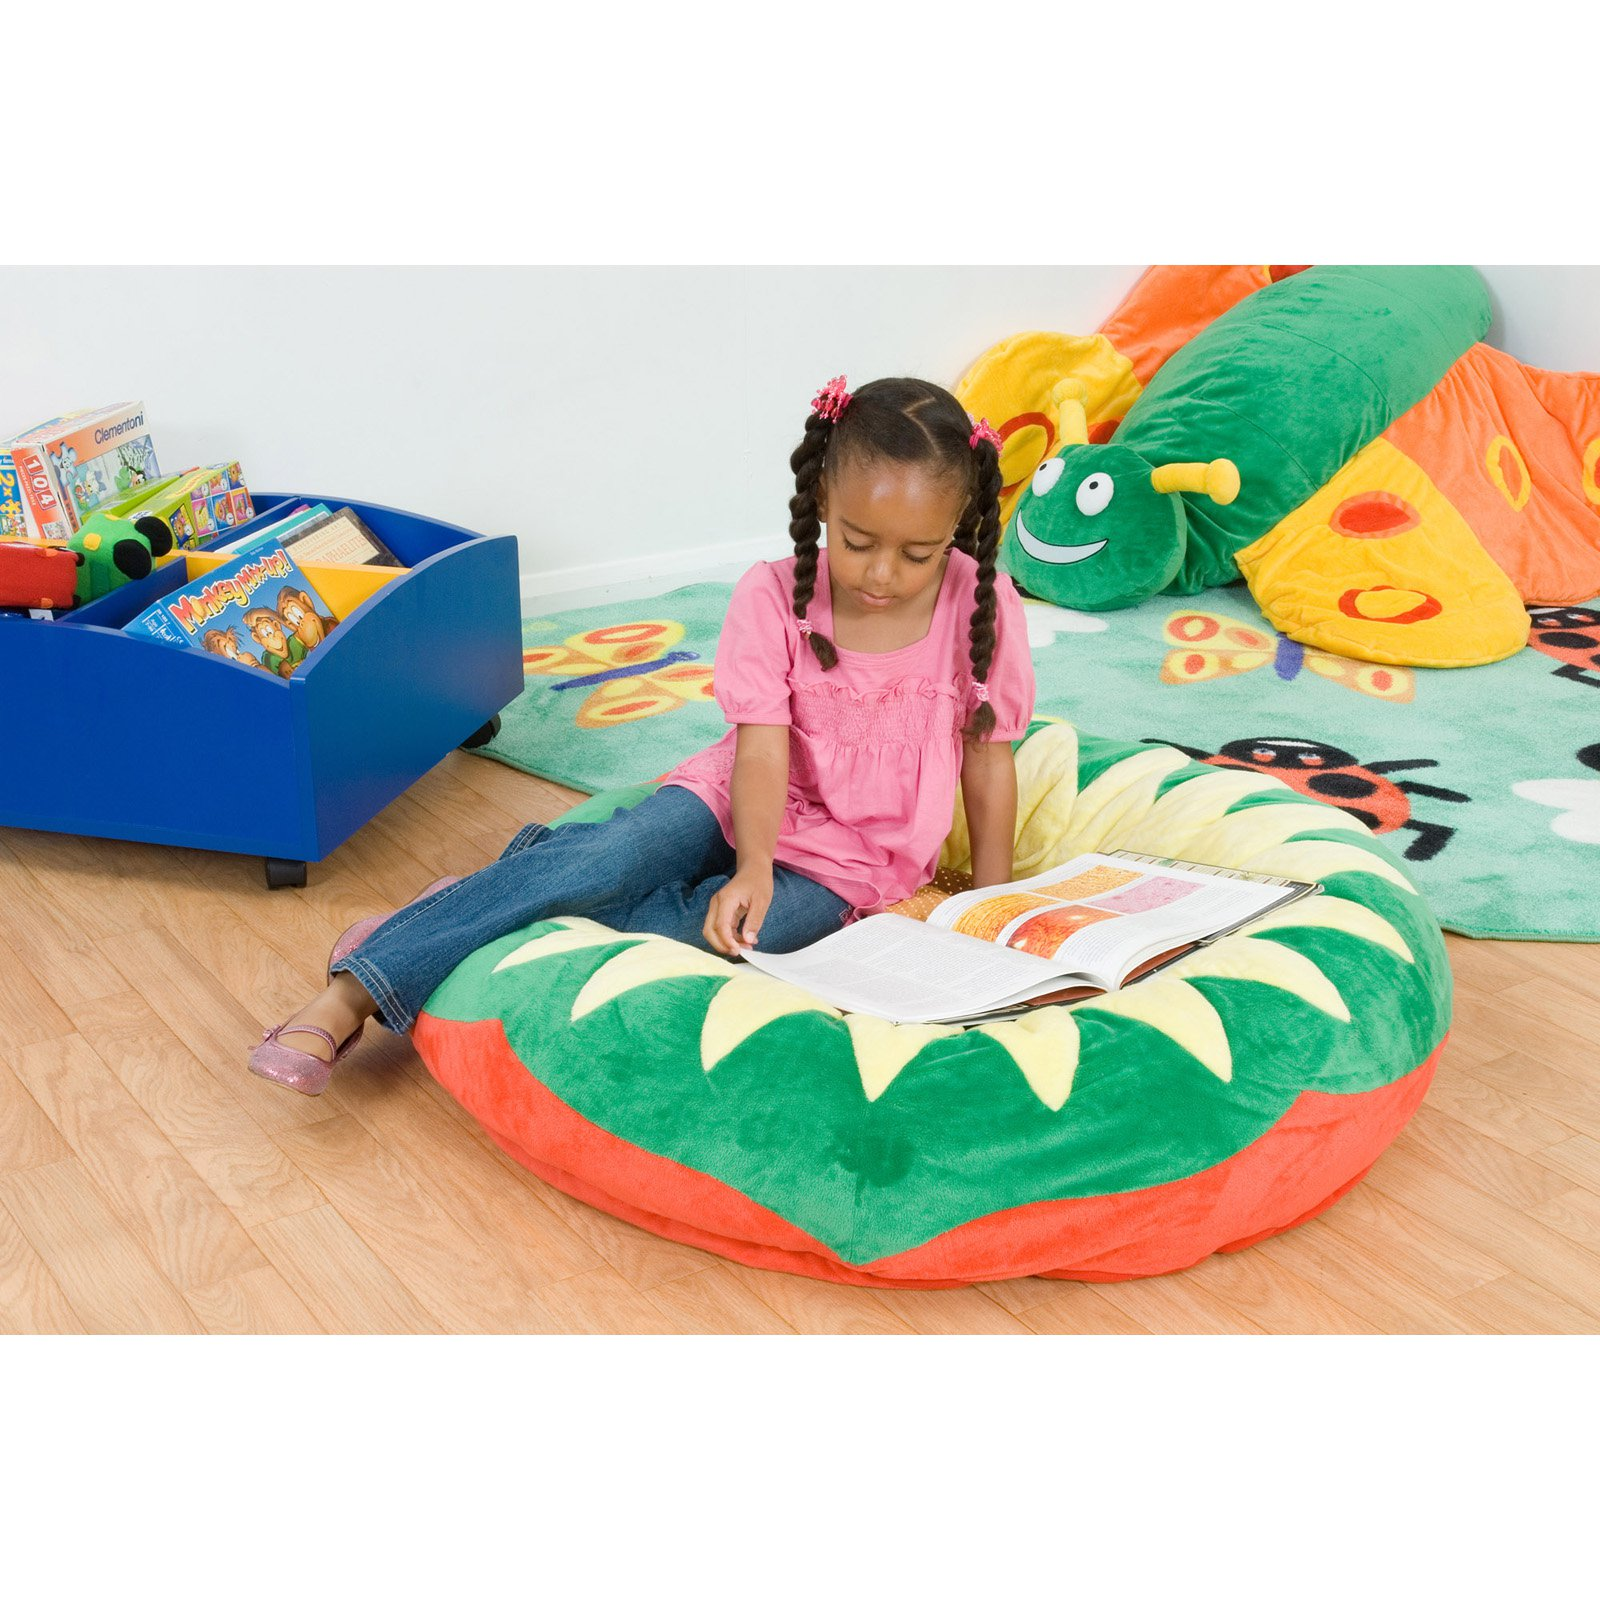 Kalokids Petal Sunflower Giant Floor Cushion